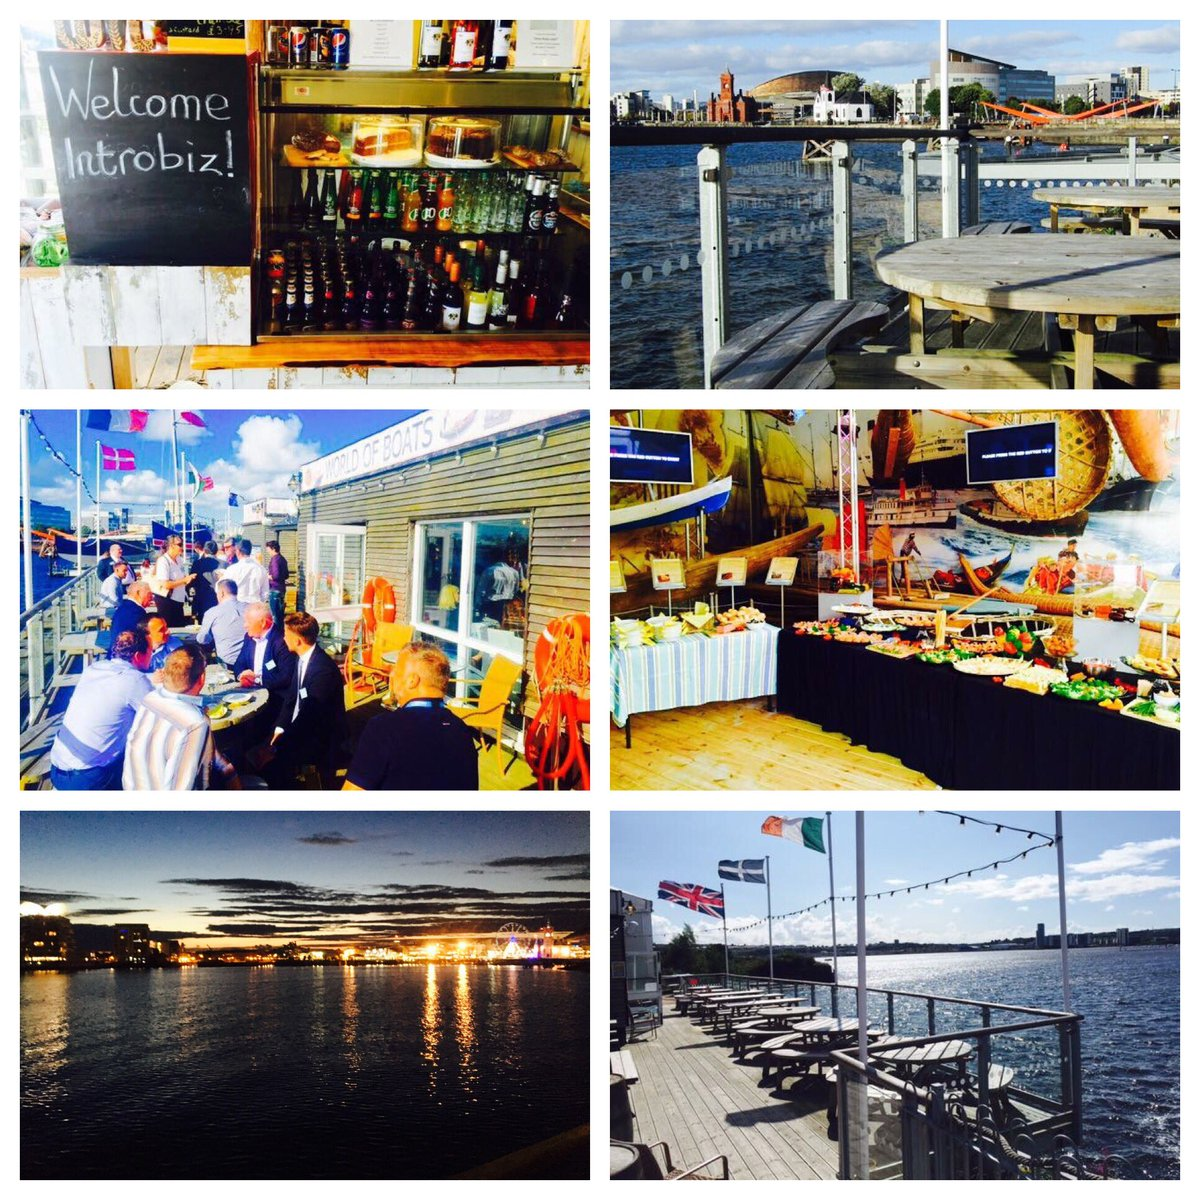 Big warm welcome to everyone attending today&#39;s #Introbiz #Networking #Event @WorldofBoats1 #Cardiff Bay 4-6pm   http://www. introbiz.co.uk/cardiff-busine ss-networking-events-wales/diary/ &nbsp; … <br>http://pic.twitter.com/7iXP6ftoRw